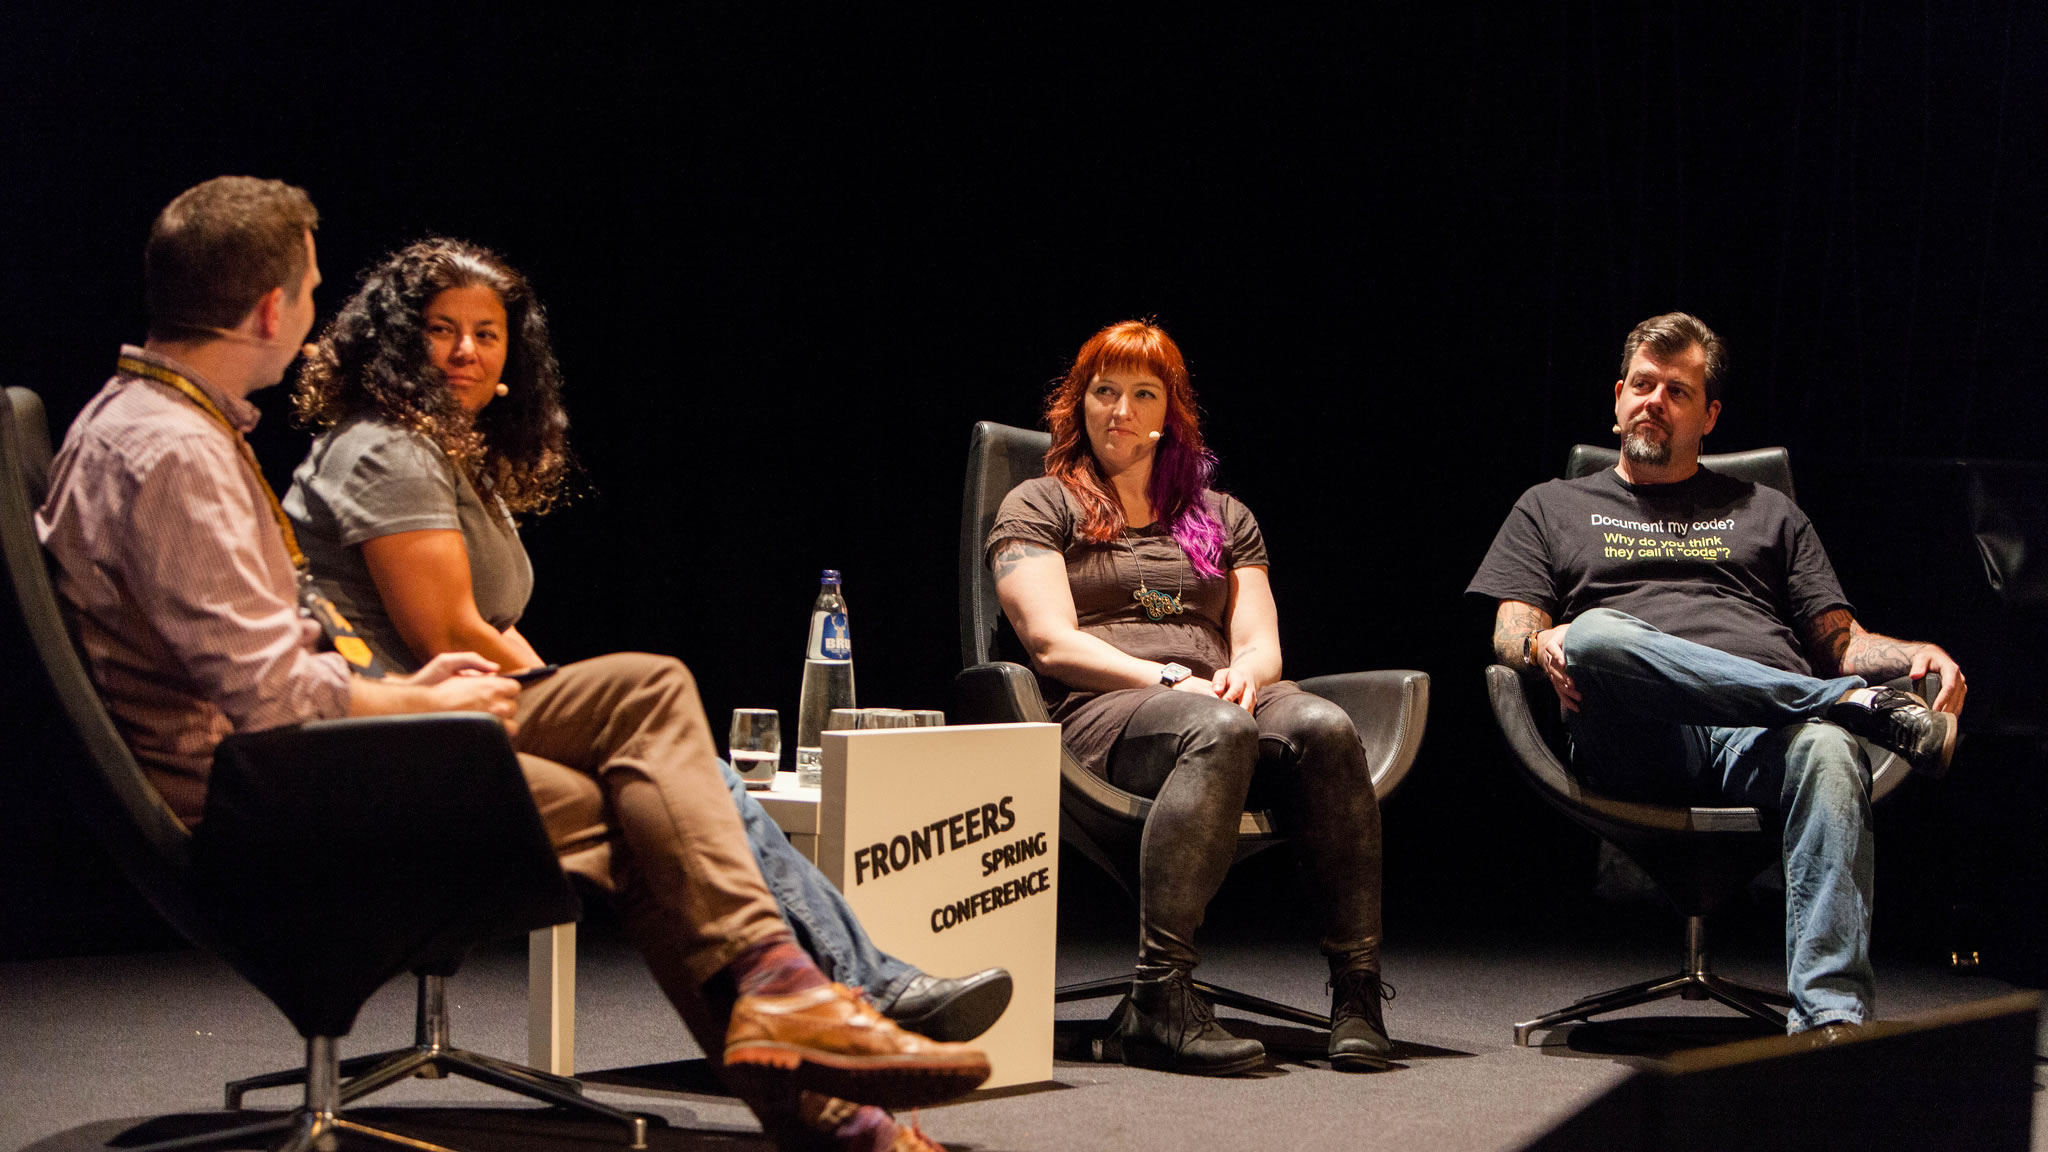 Panel discussion about Accessible Performance - Hawksworth, Weyl, Sutton, Groves. Photo by Peter Peerdeman